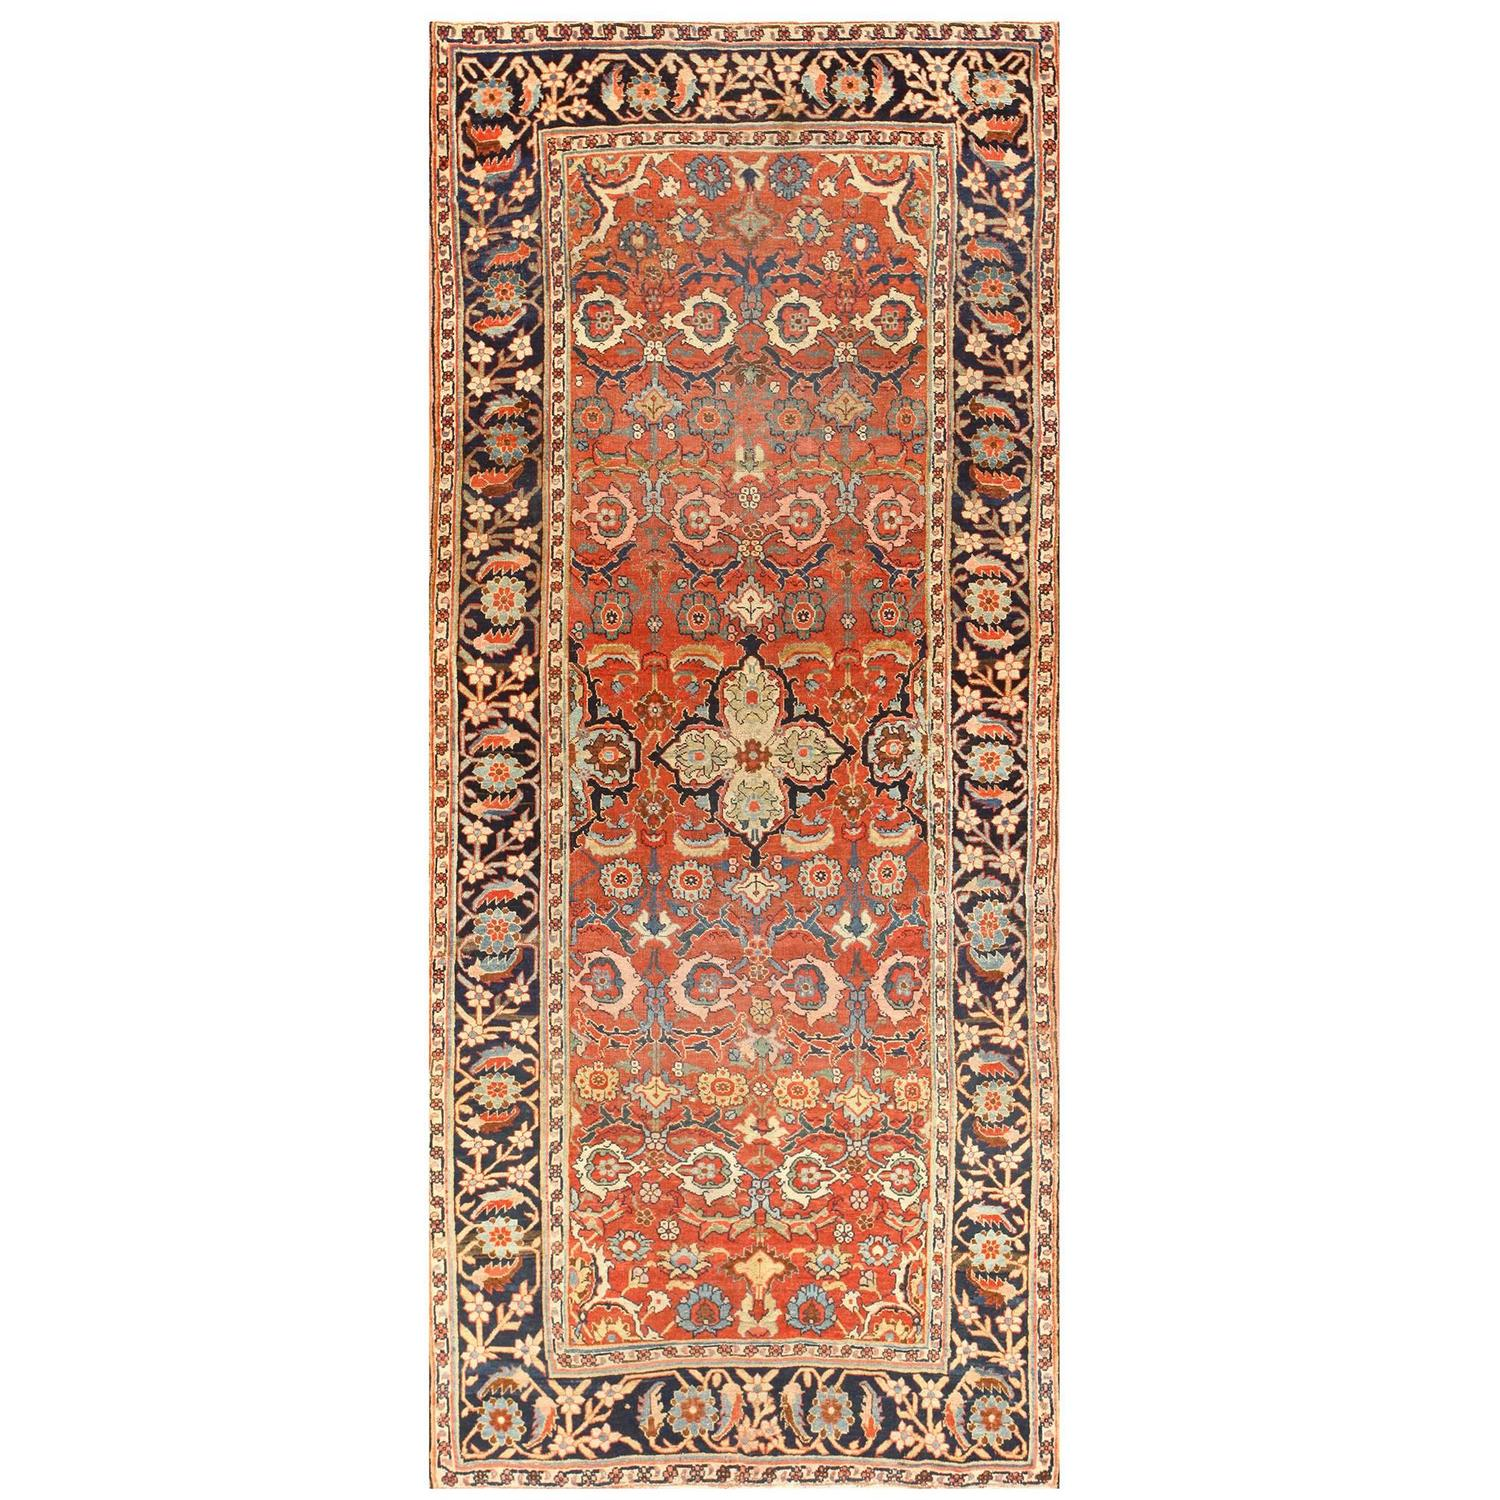 Antique Persian Bidjar Gallery Runner Rug at 1stdibs